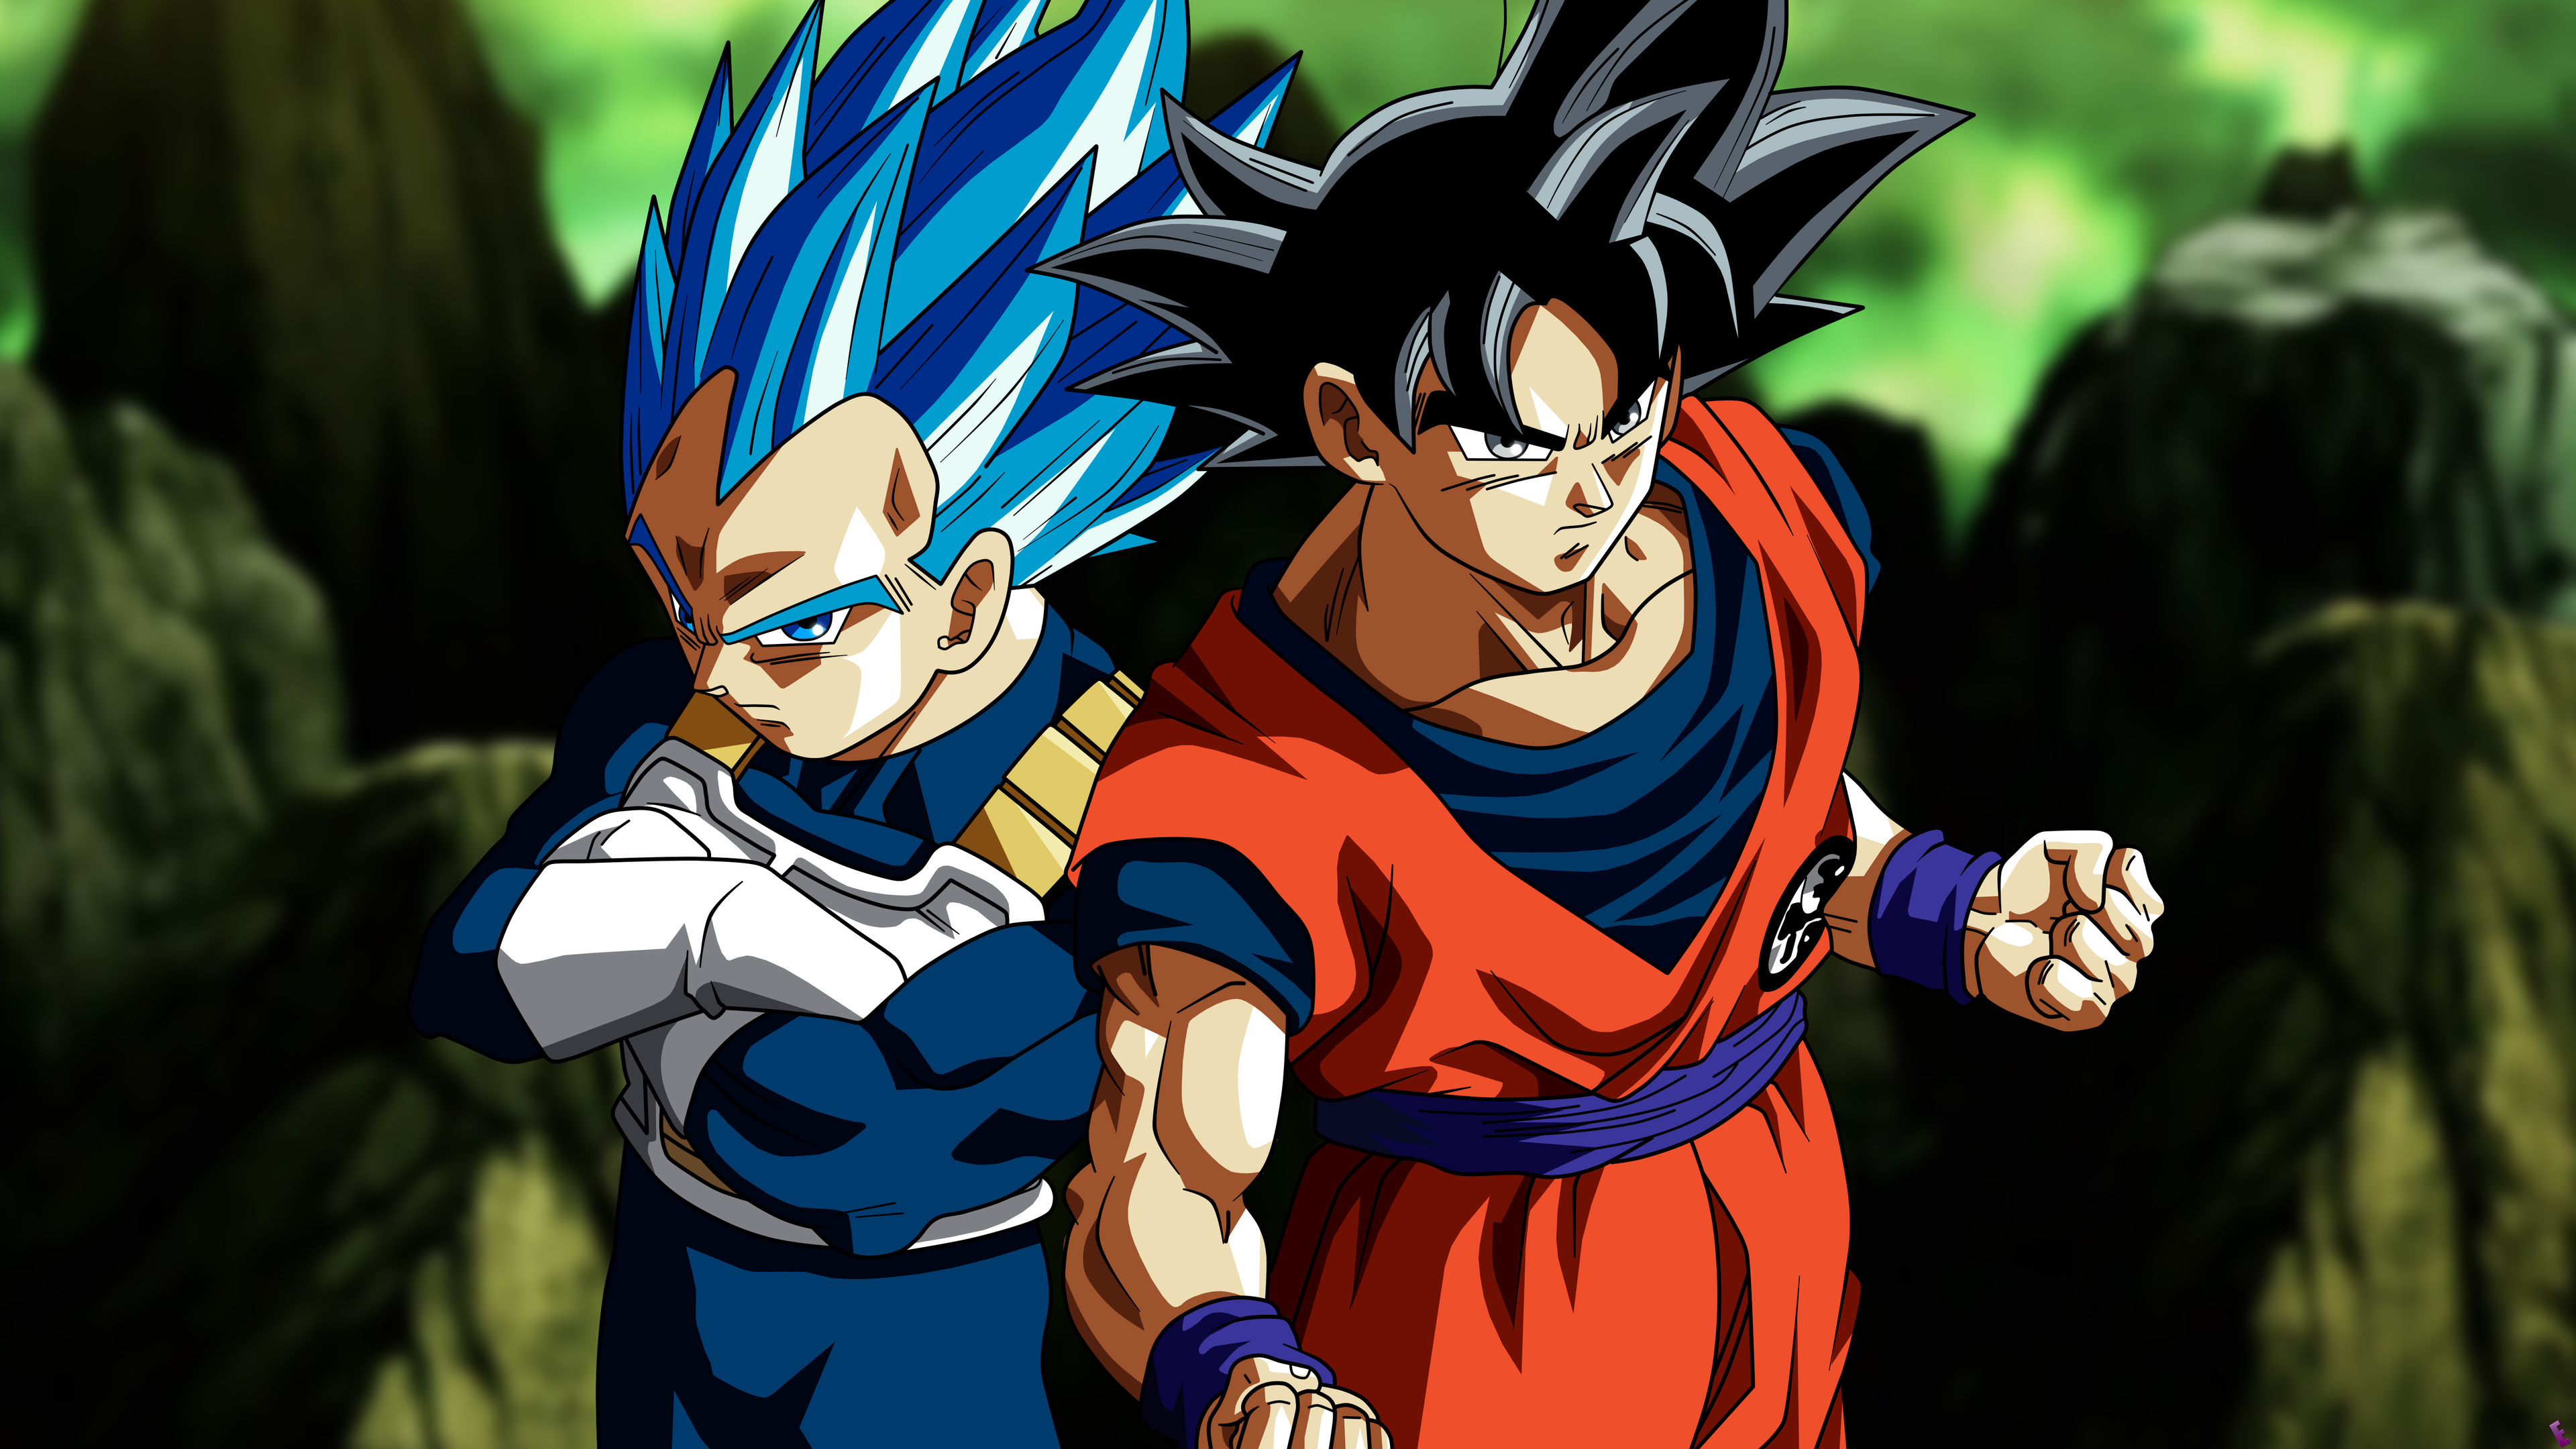 Wallpaper 4k Son Goku Vegeta In Dragon Ball Super 4k 4k